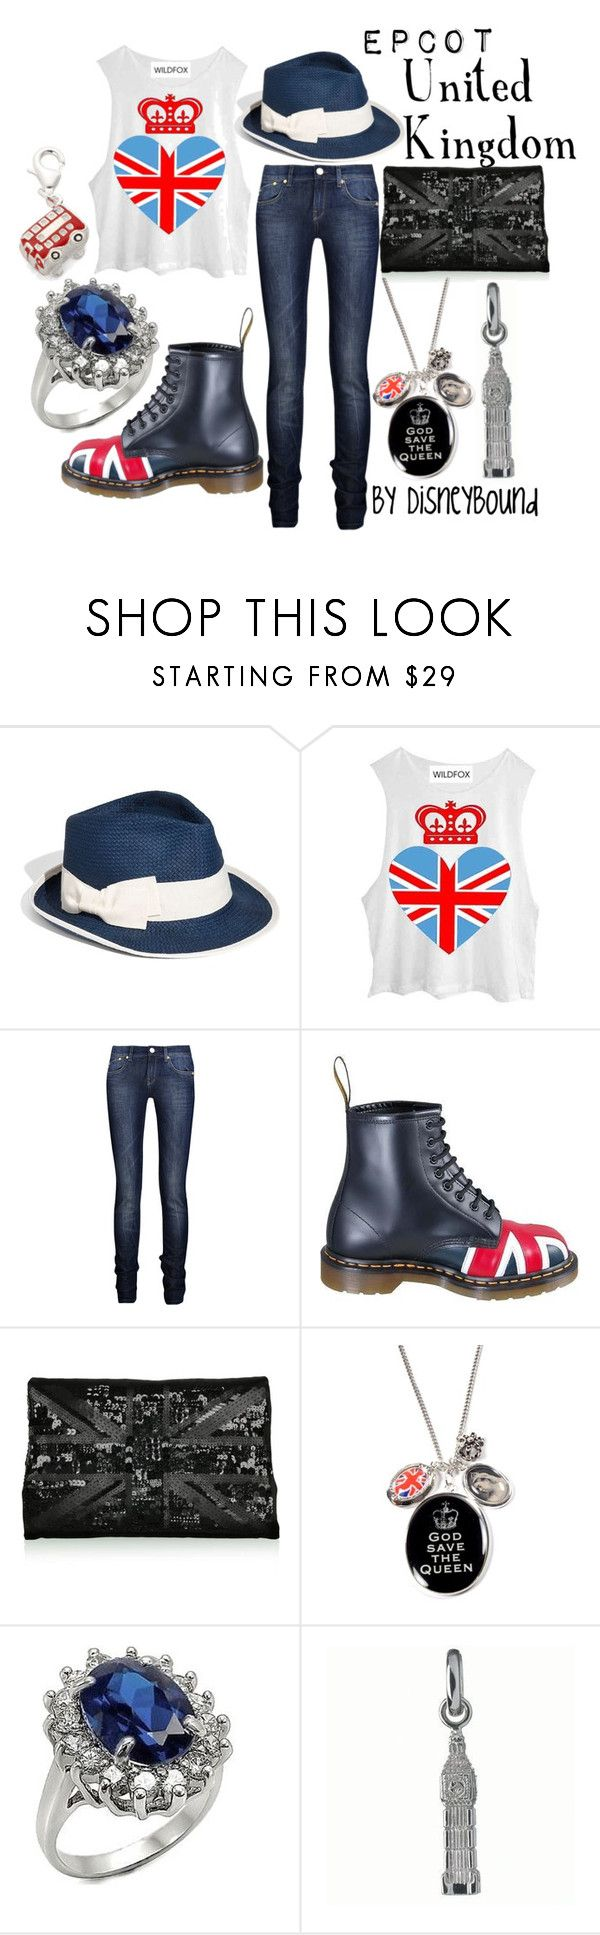 """""""United Kingdom"""" by leslieakay ❤ liked on Polyvore featuring Nordstrom, Wildfox, Victoria Beckham, Dr. Martens, Lulu Guinness, Hoolala, Fantasy Jewelry Box, Links of London, Simply Silver and disney"""